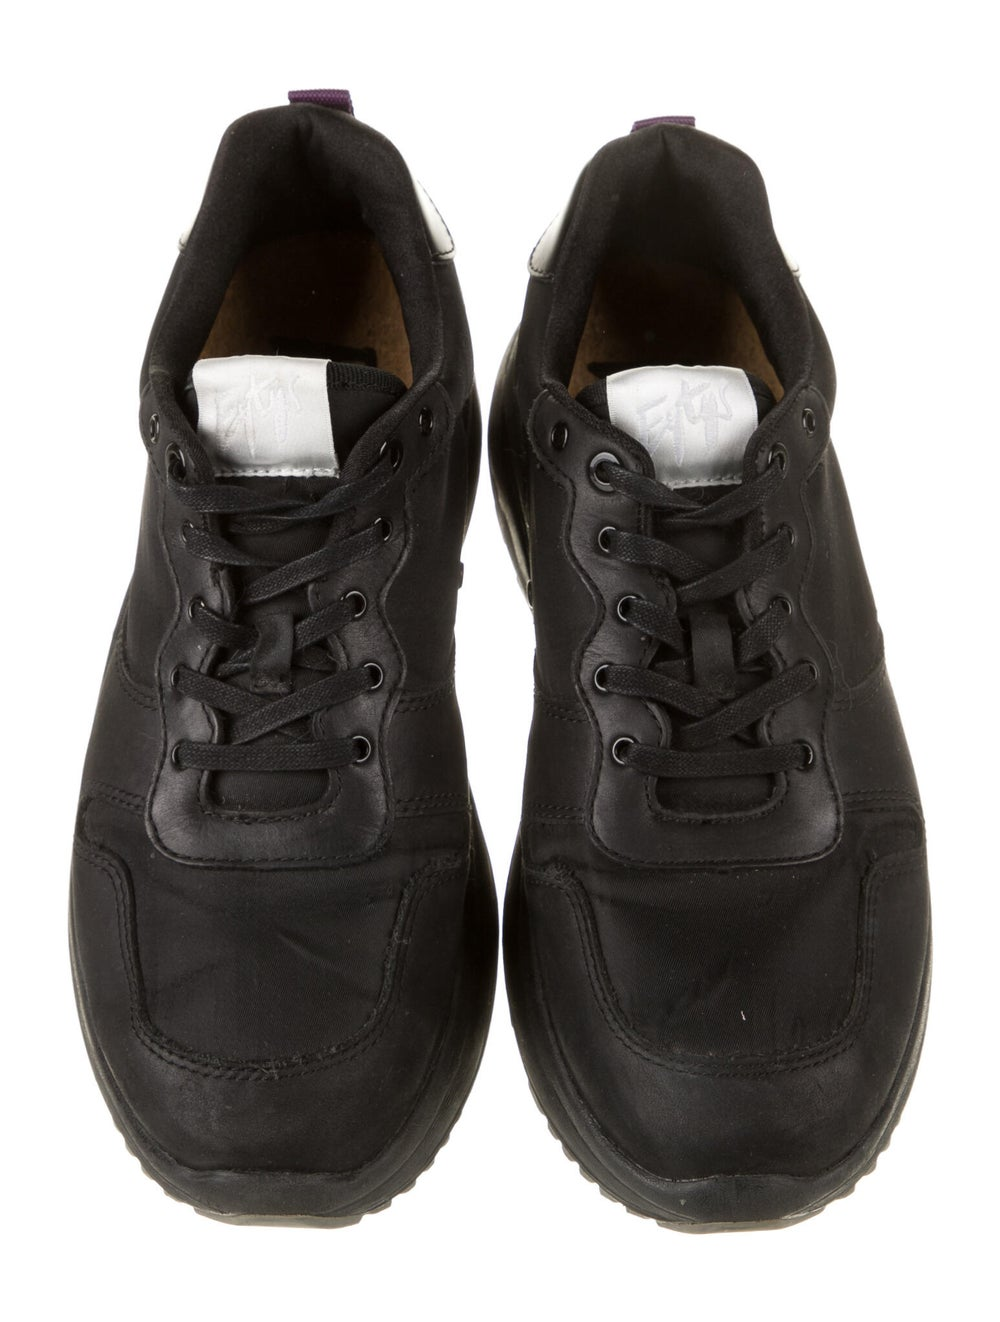 Eytys Leather Sneakers Black - image 3